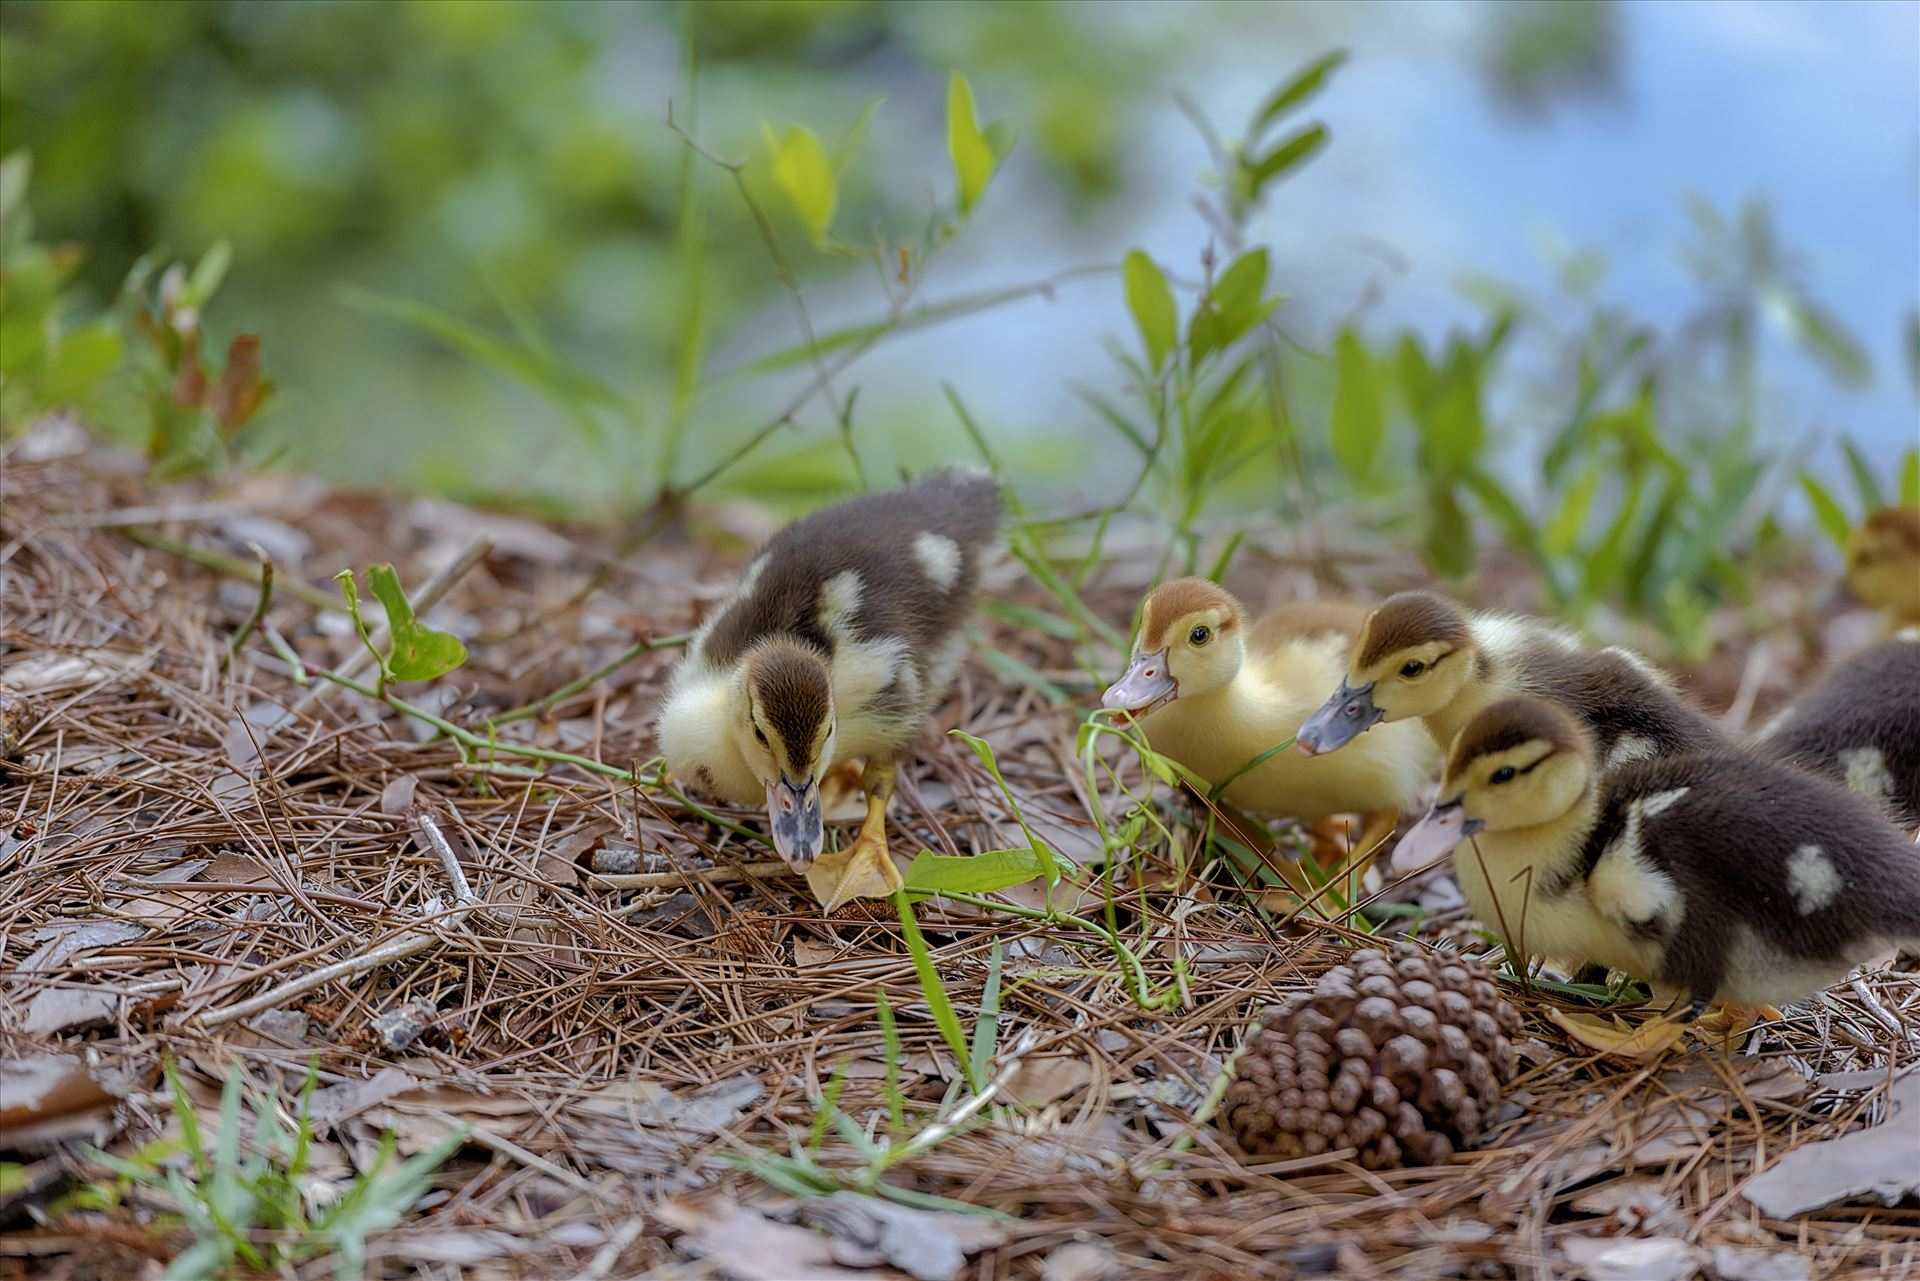 muscovy ducklings with bokeh forground and back ground lake caroline panama city florida ss sf 8108855.jpg muscovy ducklings at lake caroline in panama city florida by Terry Kelly Photography